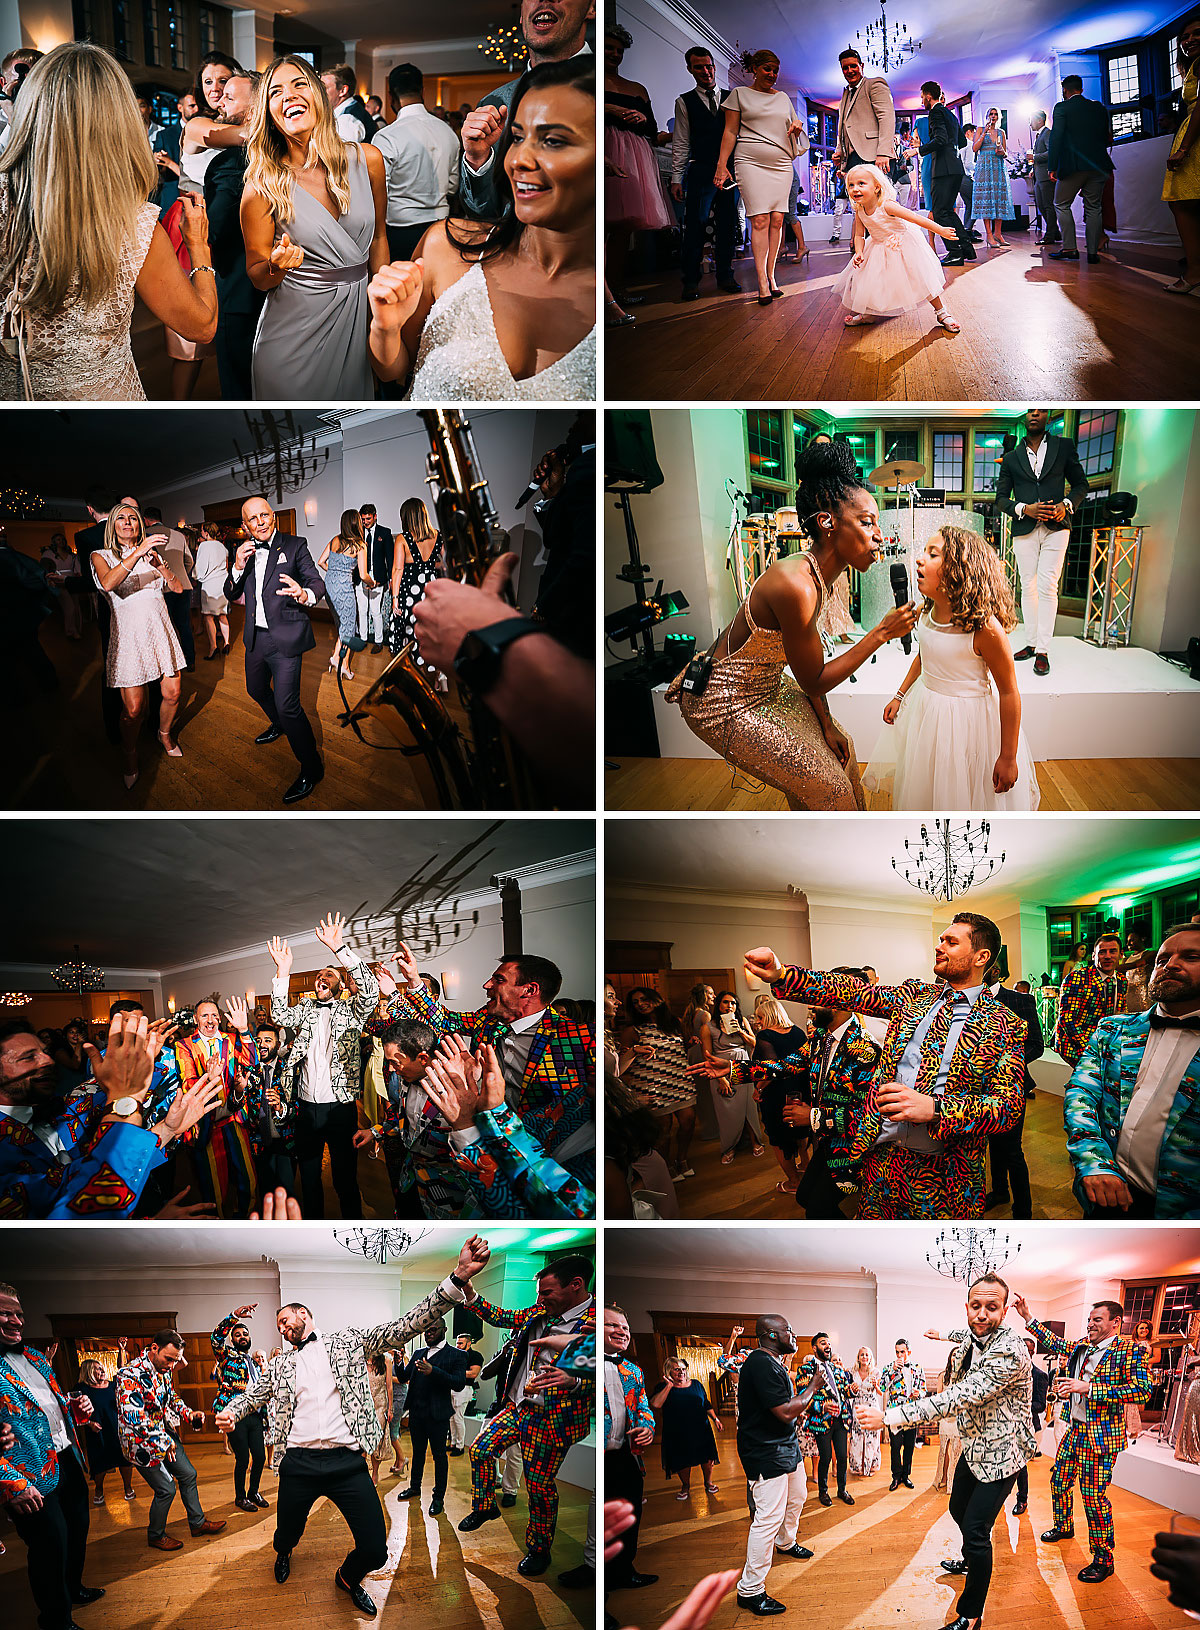 dance floor at Coombe lodge wedding